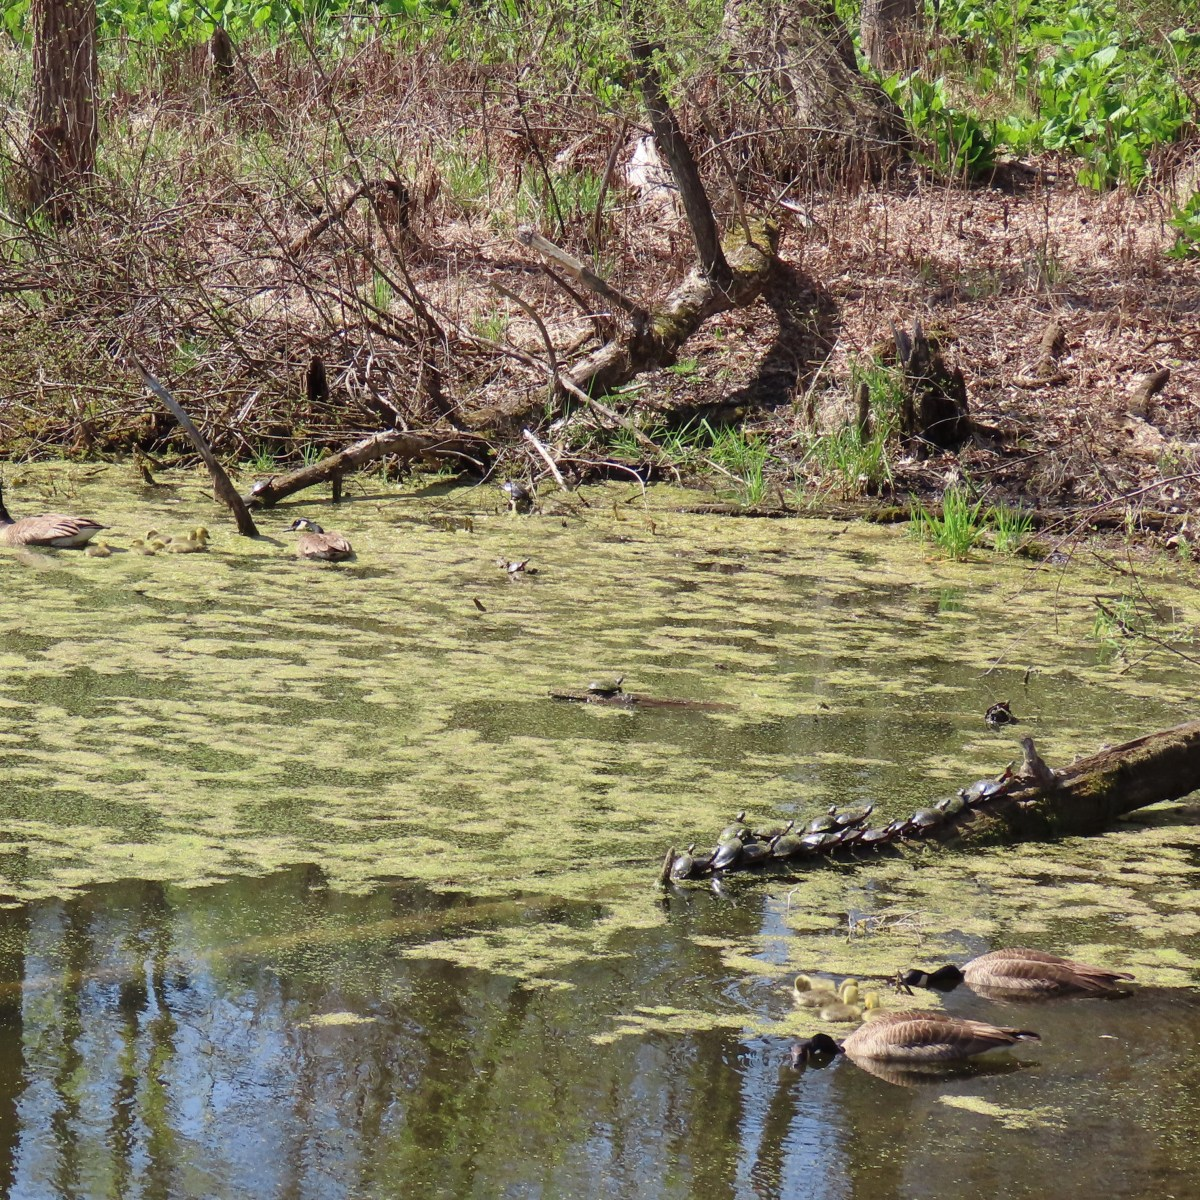 A family of geese swim near painted turtles on a log